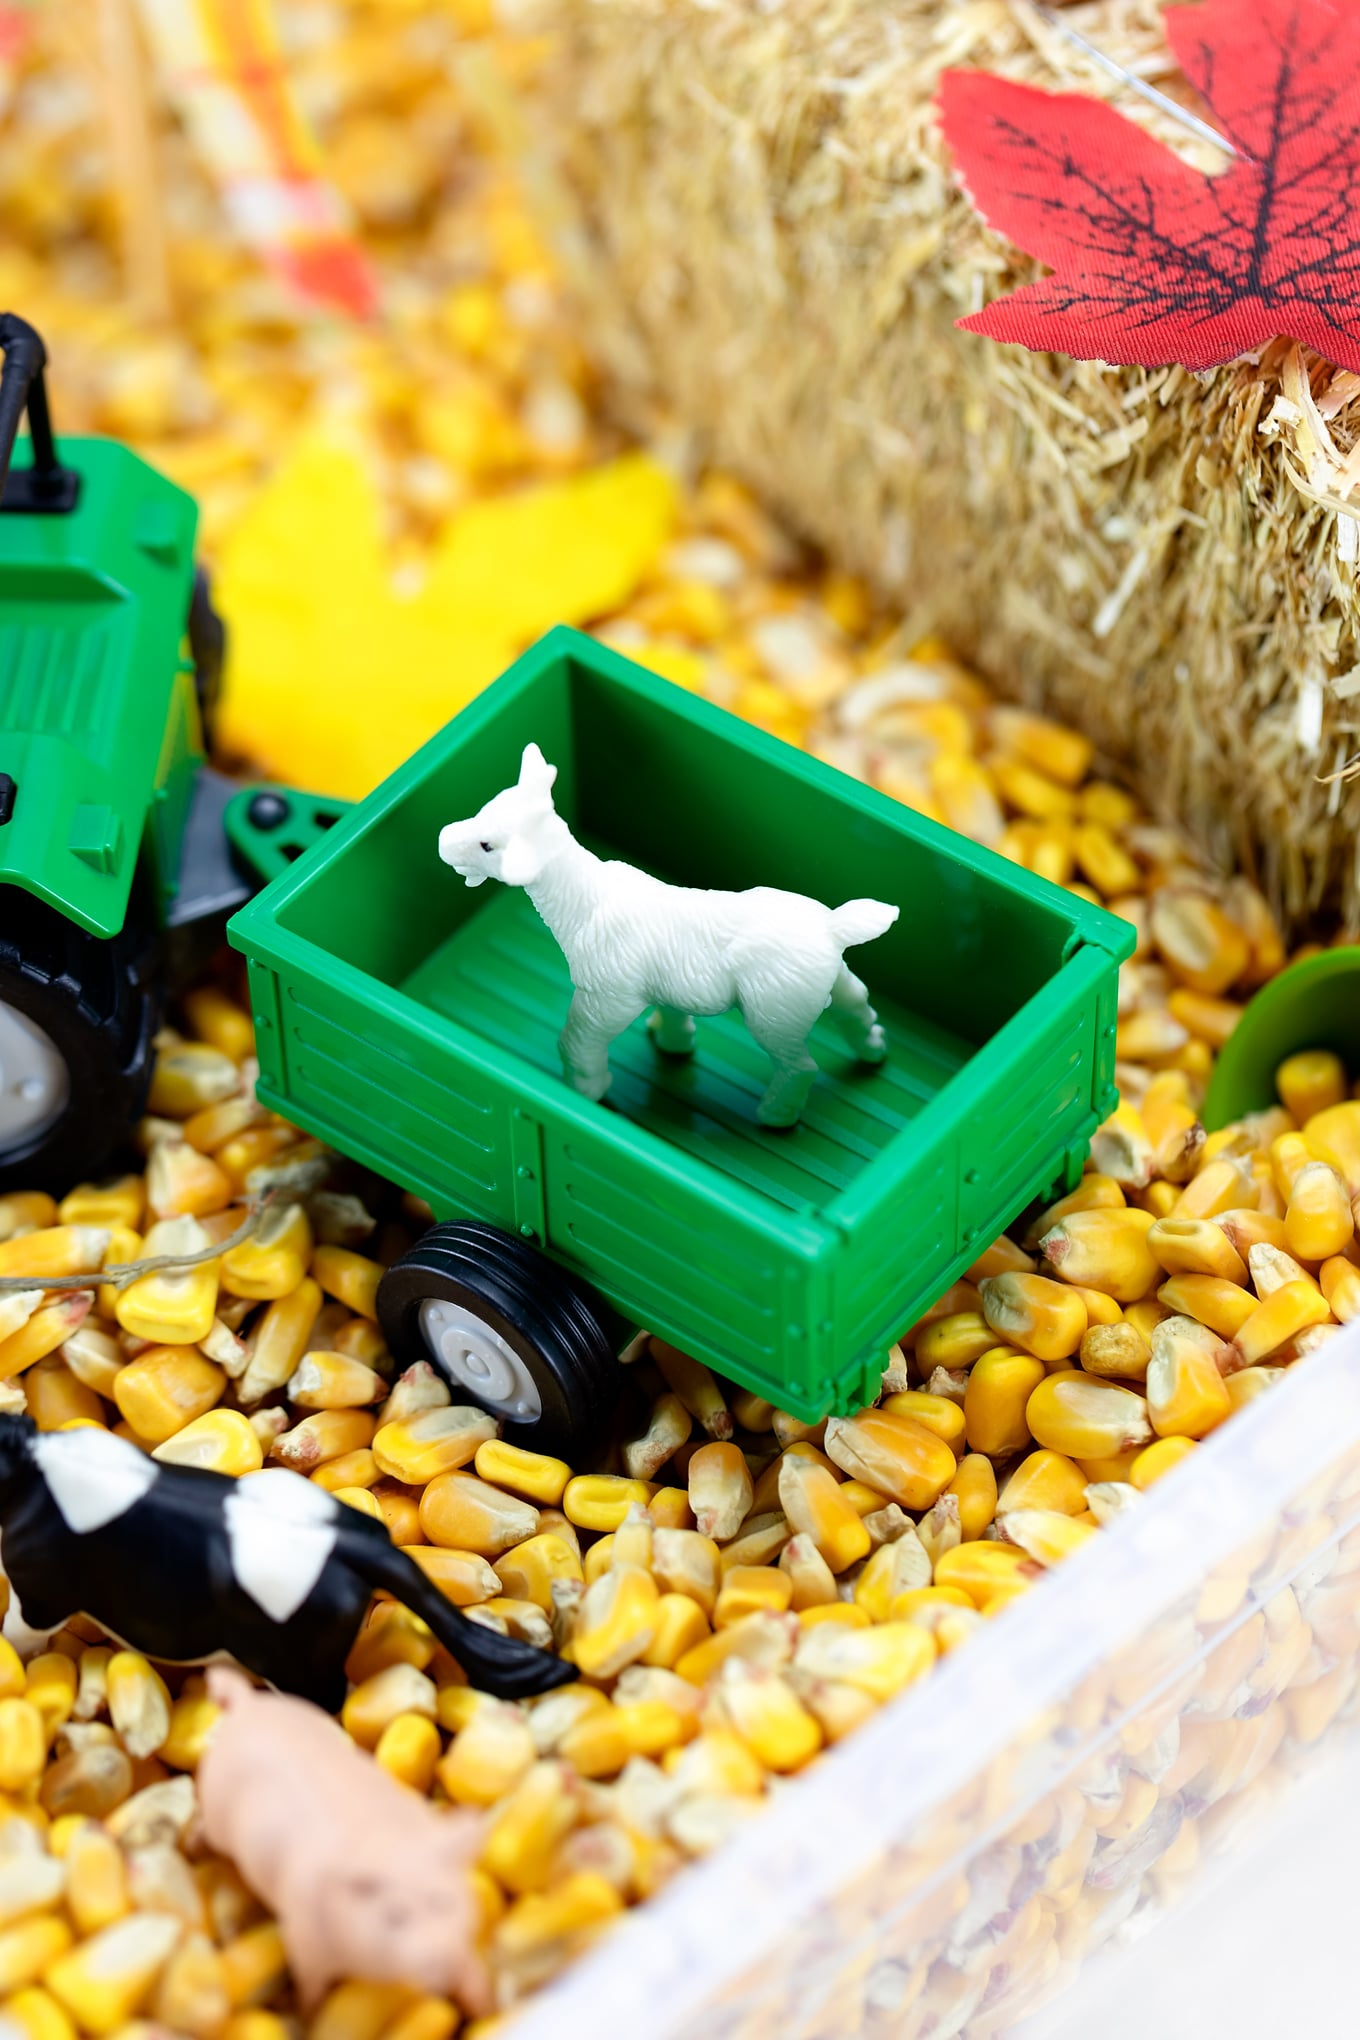 Toy Tractor and Toy Goat